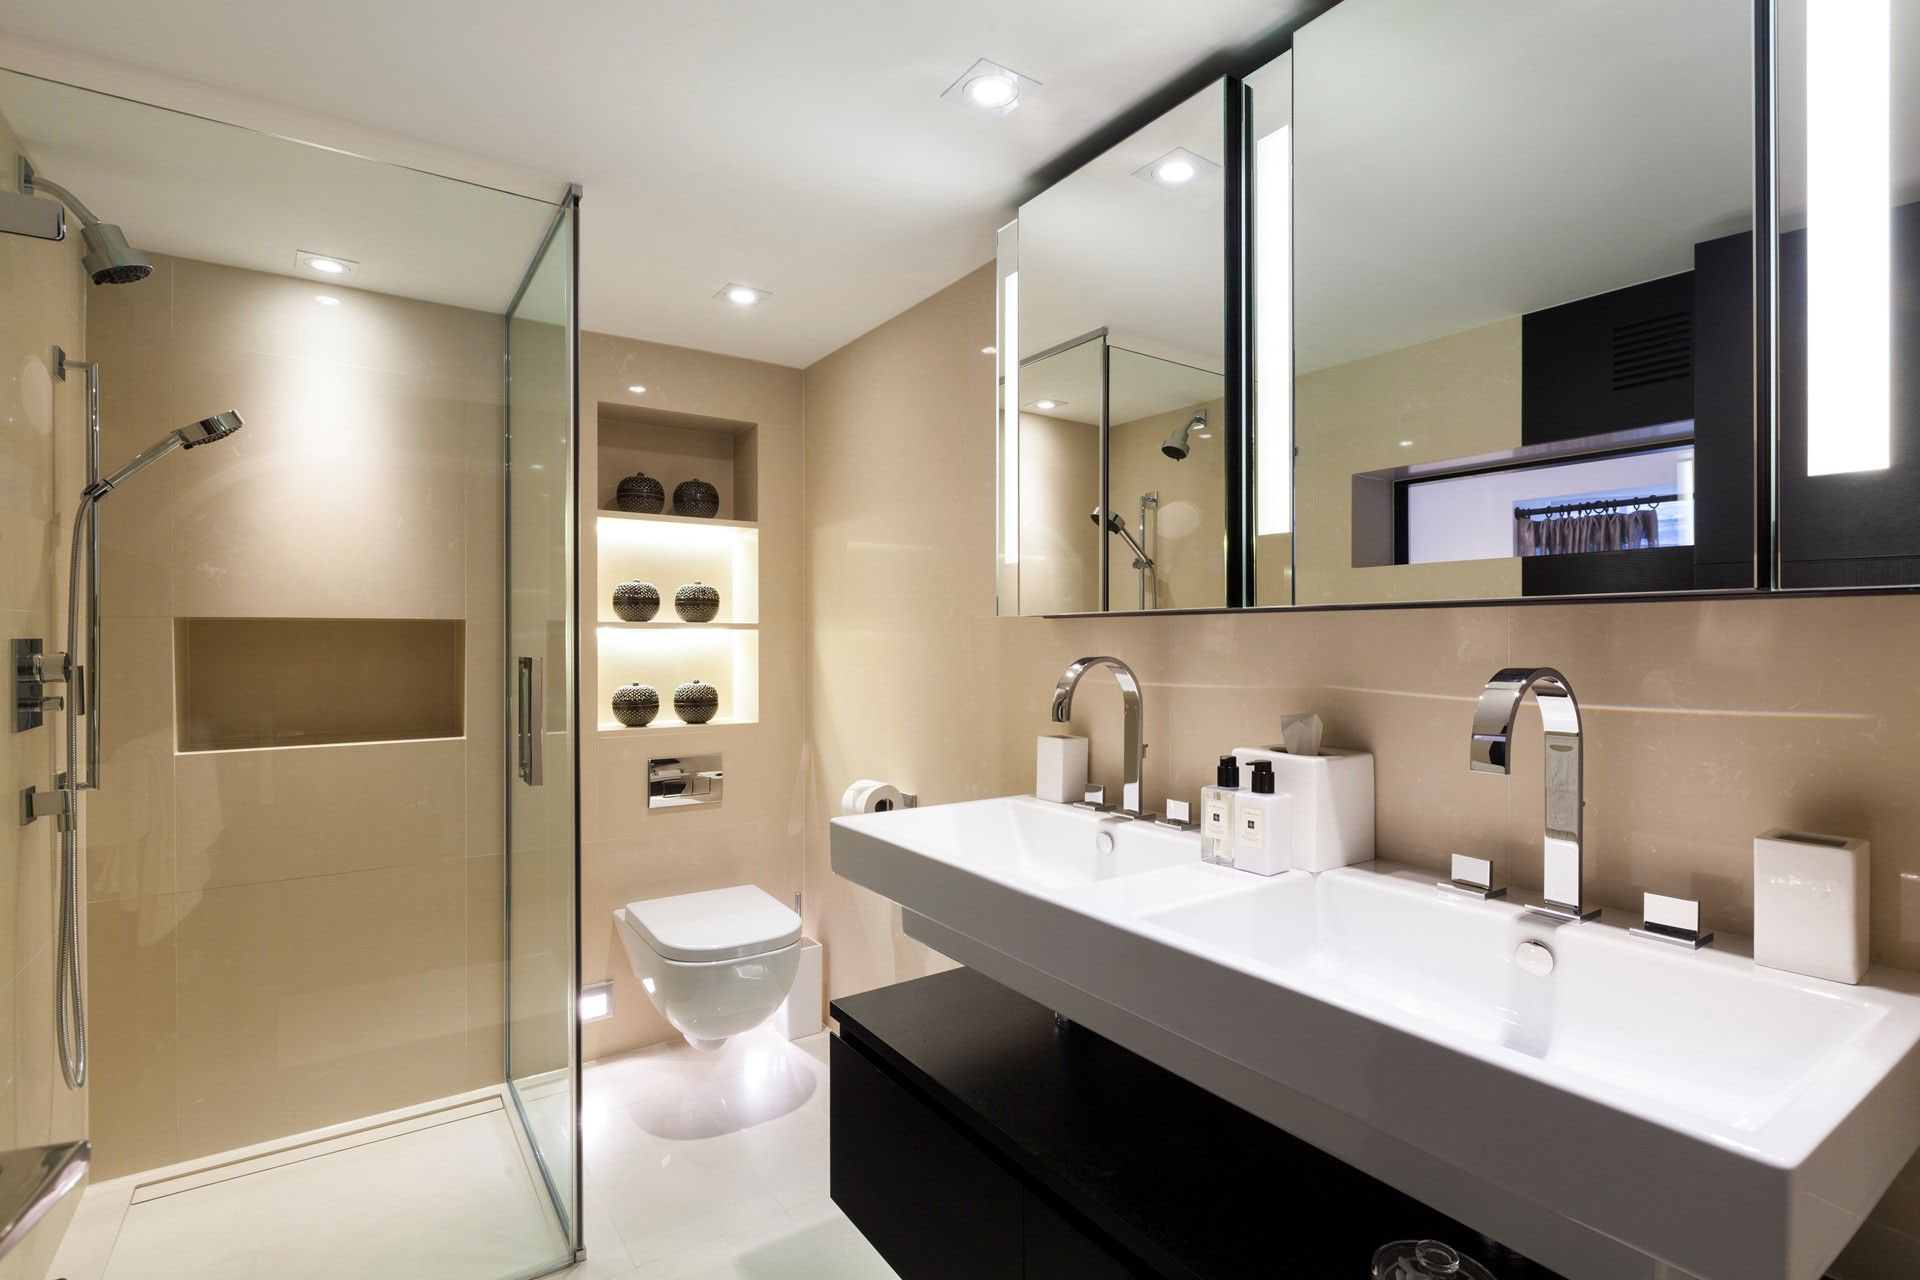 Double Sinks, Bathroom, Glass Shower, Henrietta Street Apartment